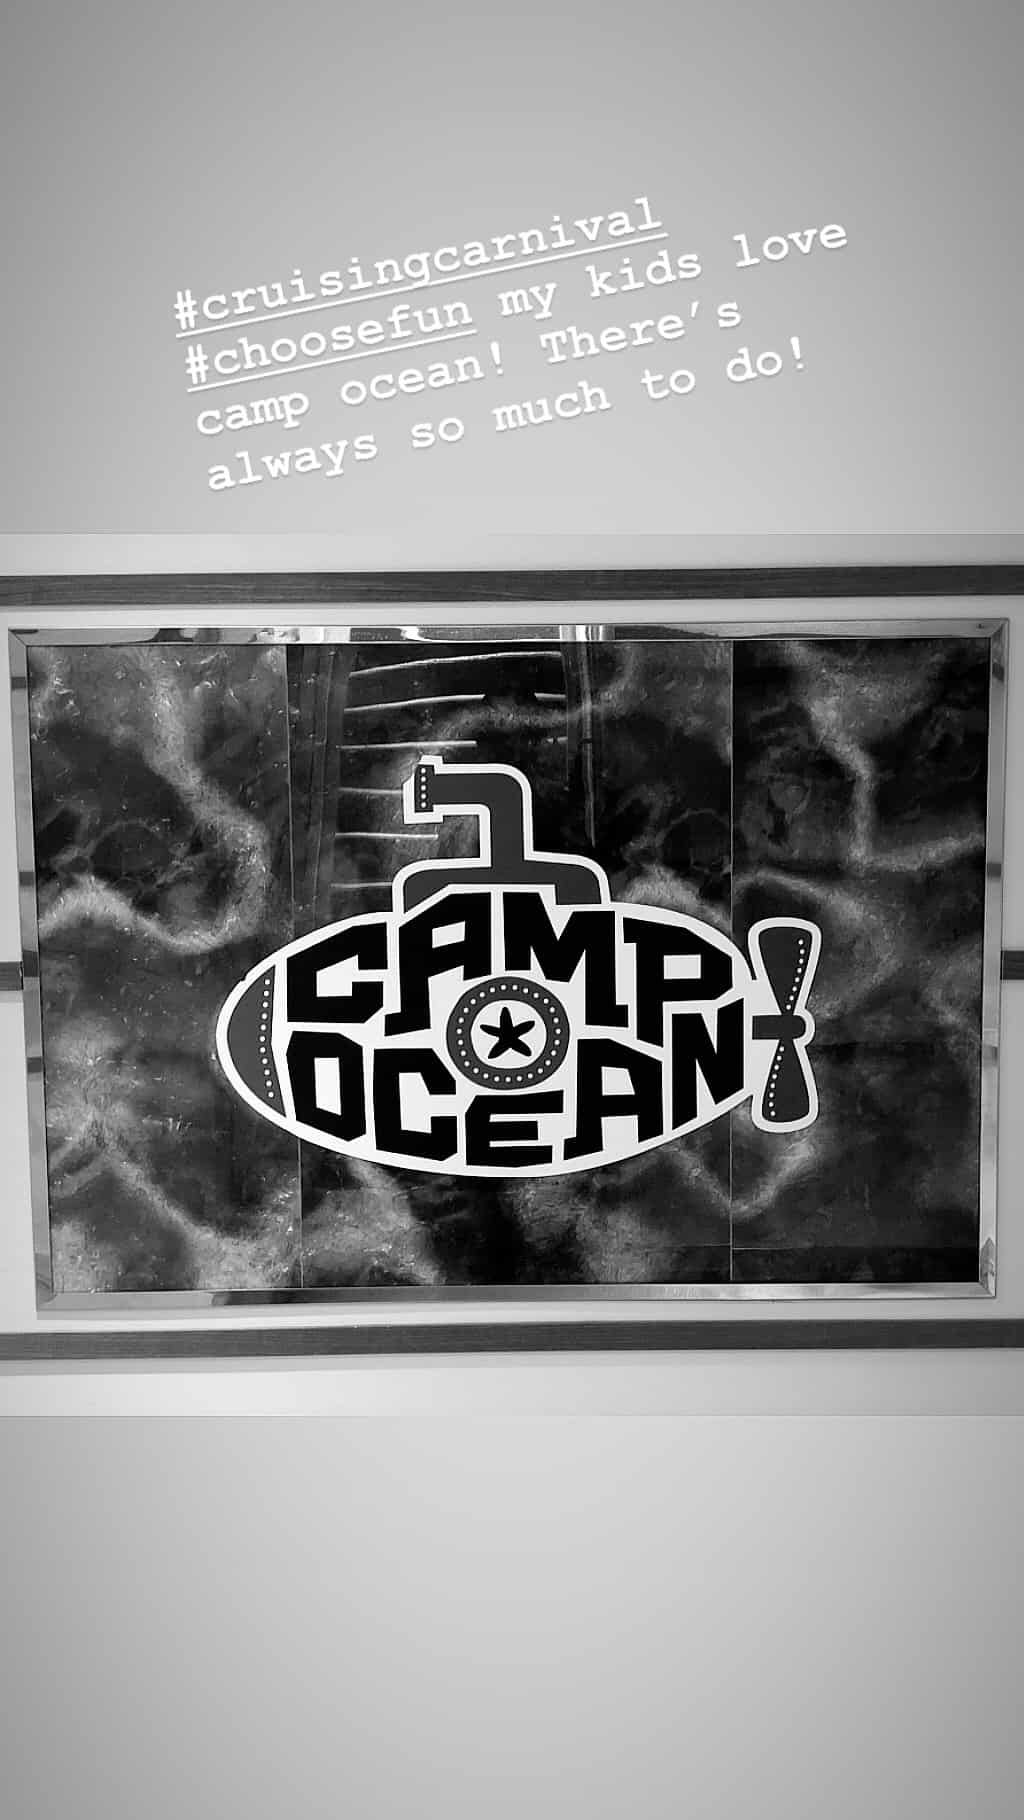 black and white photo of camp ocean sign